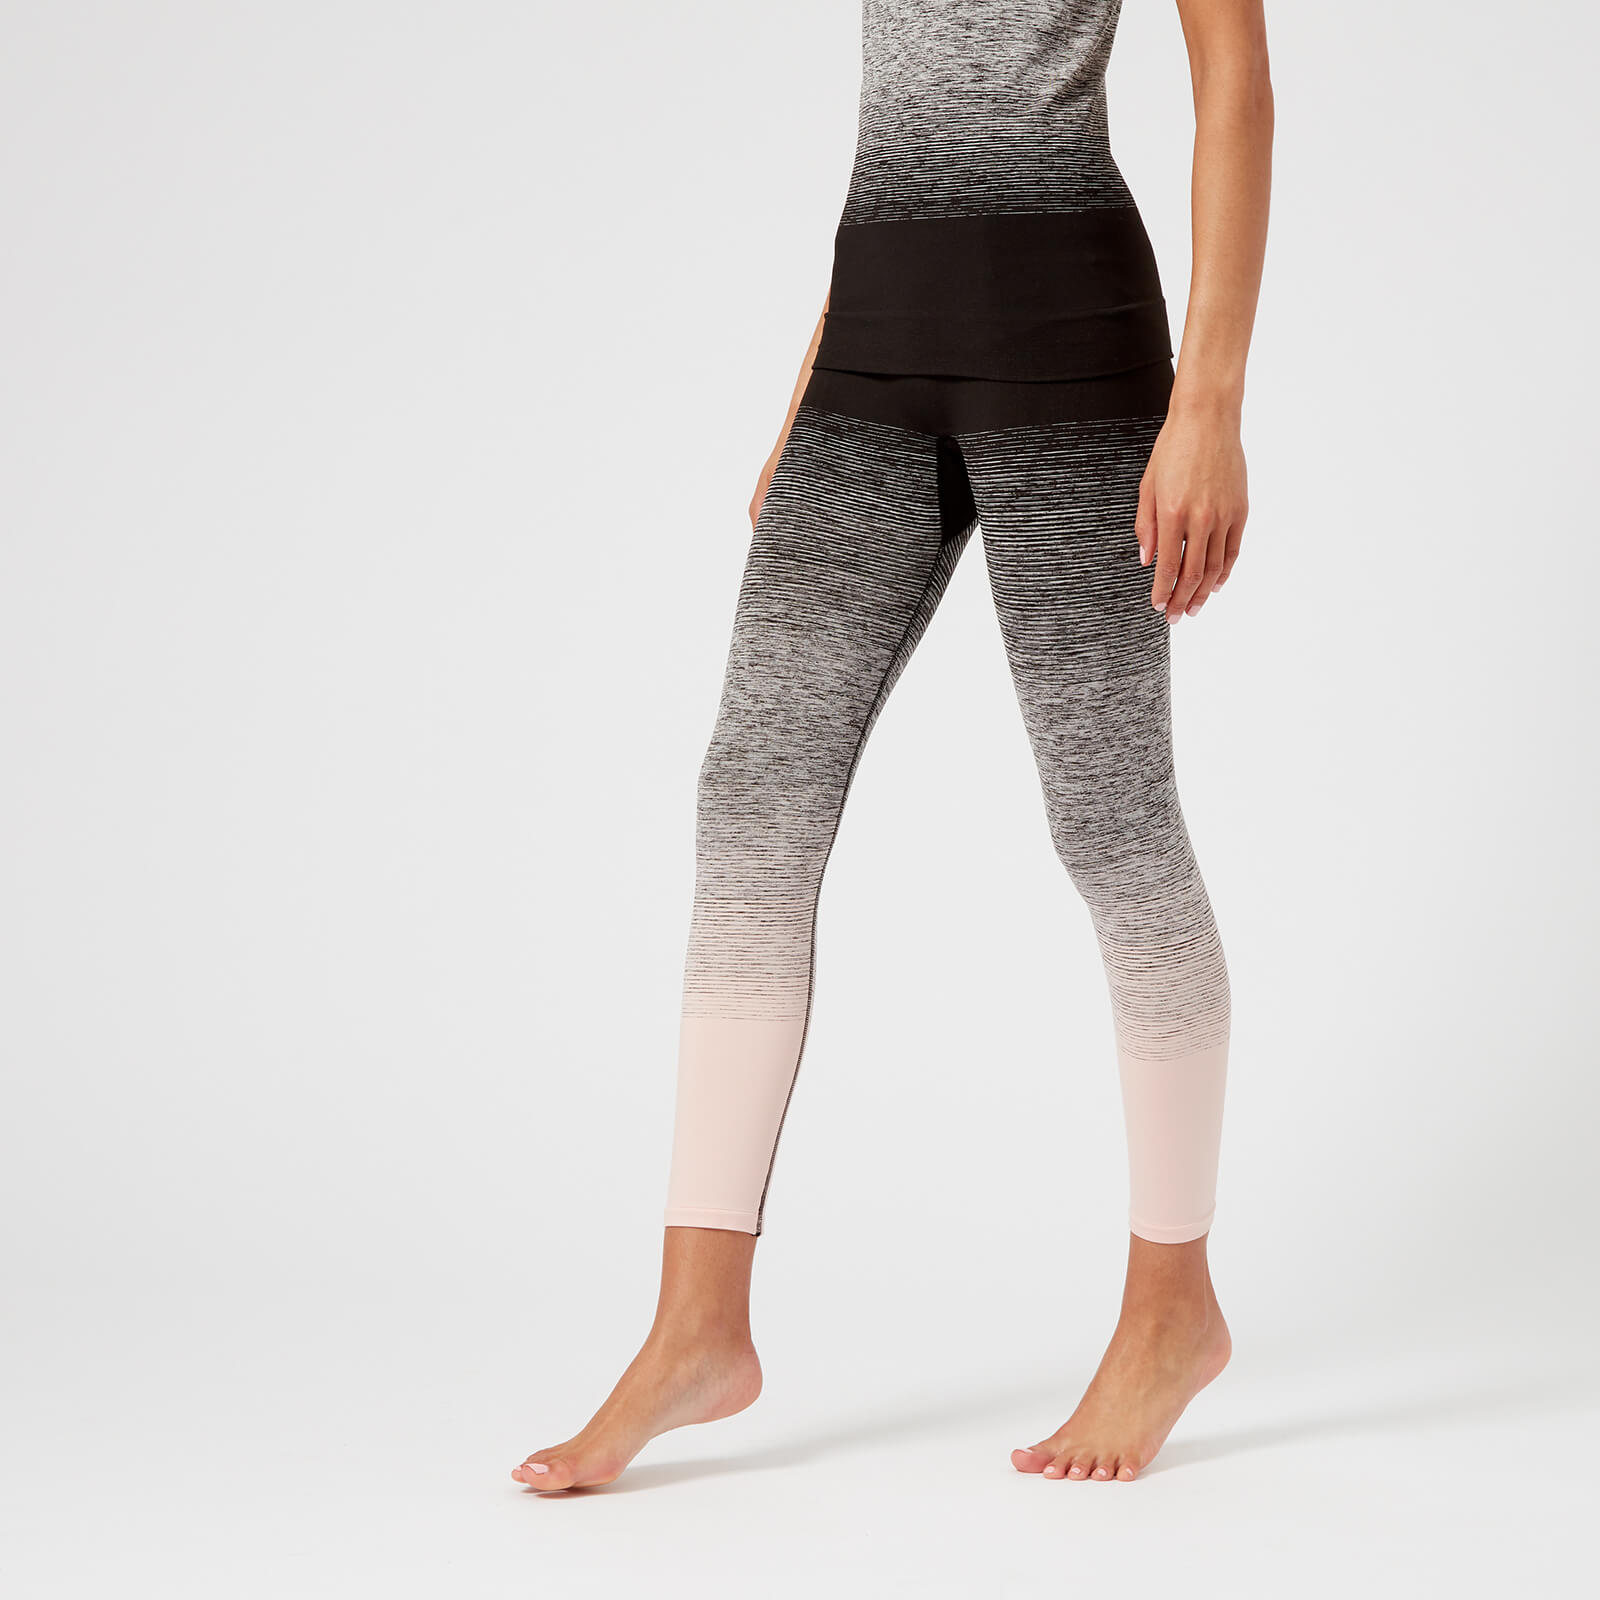 85103a7ed Pepper   Mayne Women s Ombre Compression 3 4 Leggings - Backstage Blush -  Free UK Delivery over £50